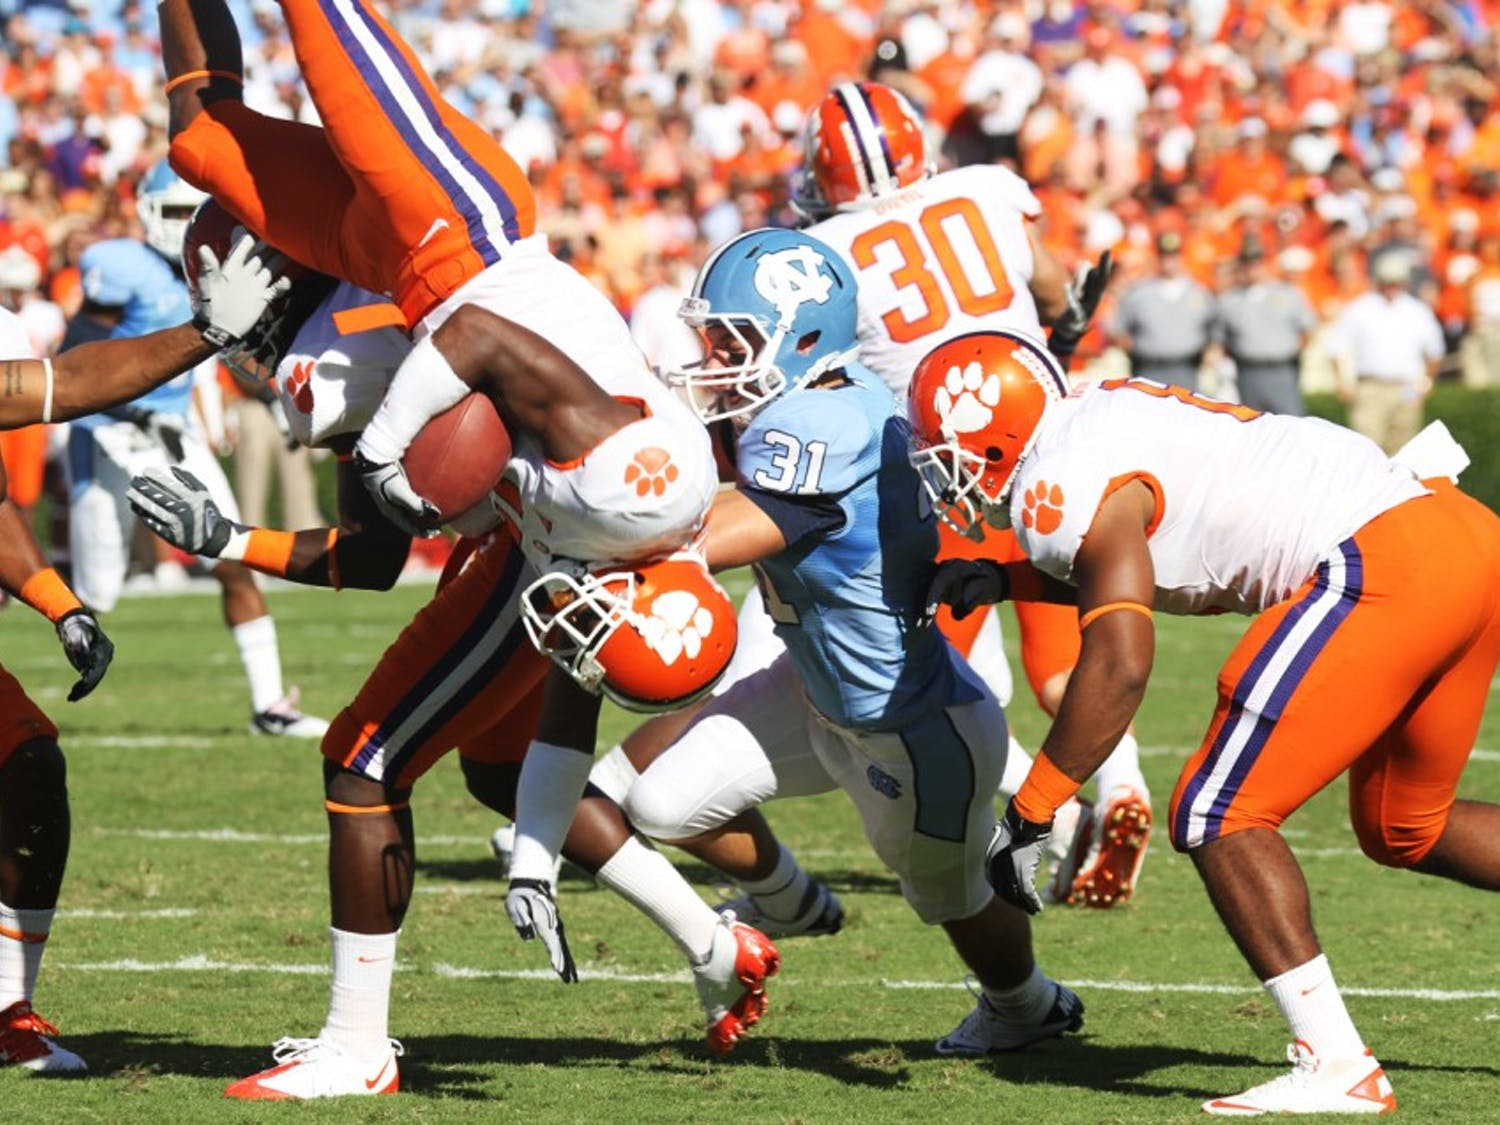 The Tar Heels flipped Clemson on its head, beating the Tigers for the first time since 2001. UNC held Clemson's potent rushing attack to just 3.4 yards per rush.